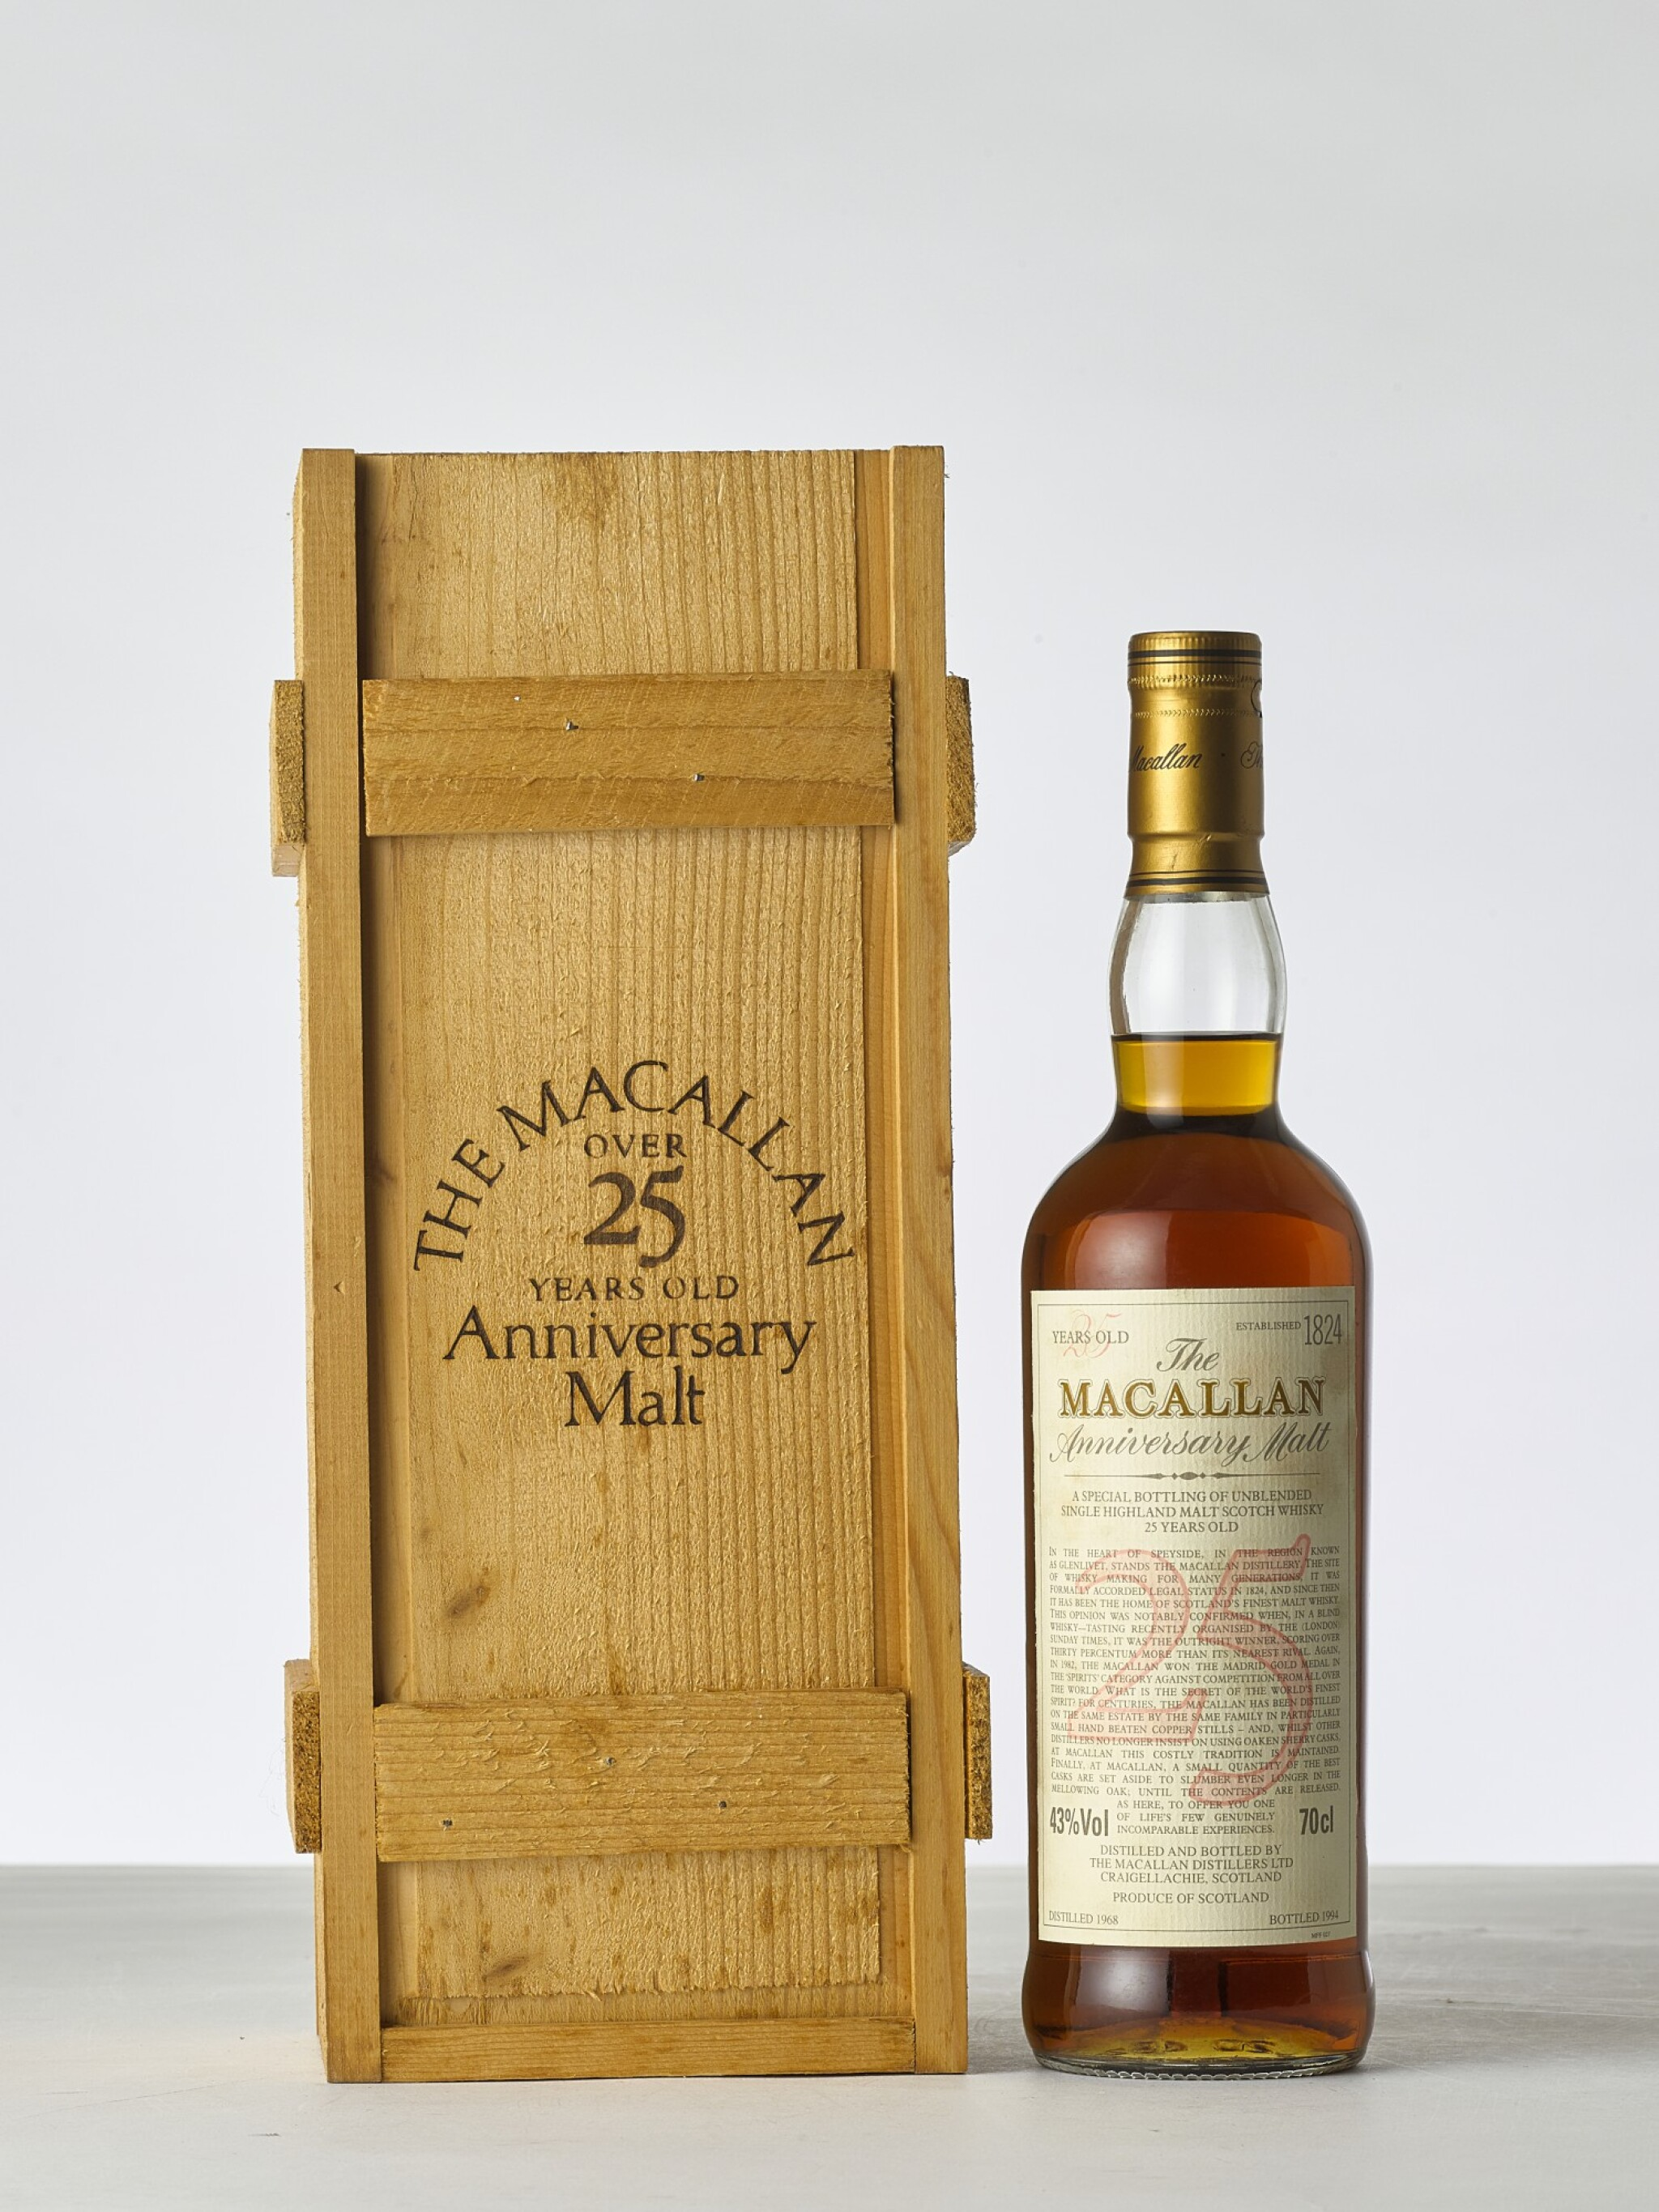 View 1 of Lot 2008. The Macallan 25 Year Old Anniversary Malt 43.0 abv 1968 (1 BT70).